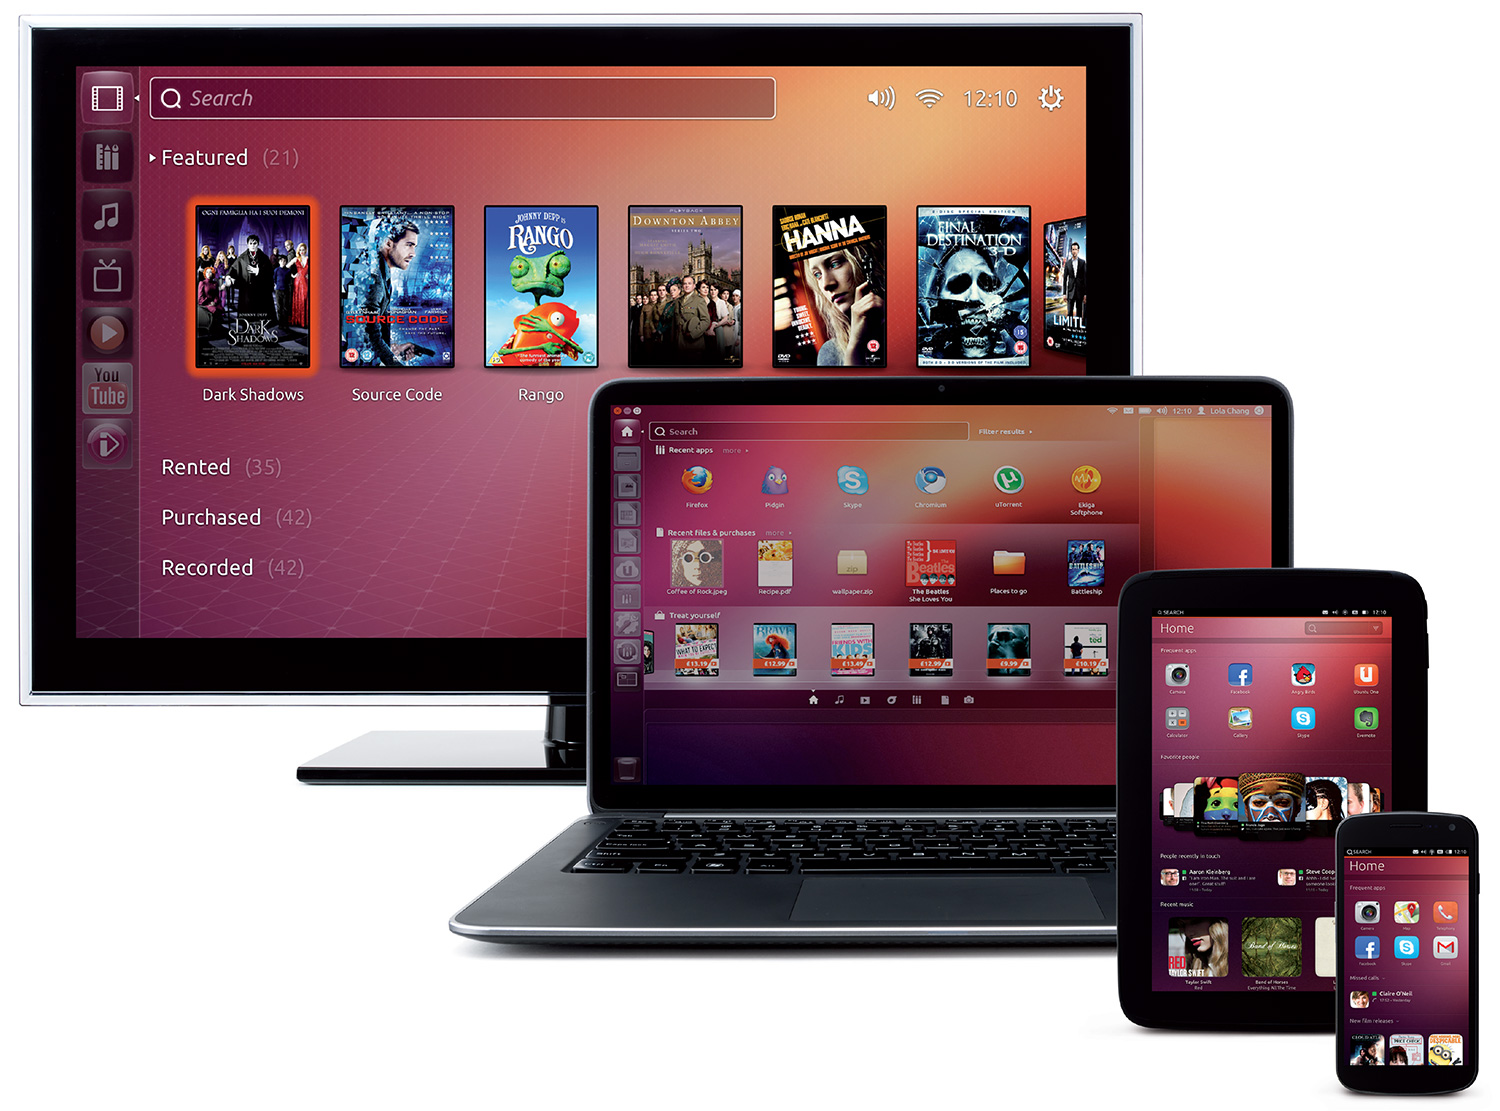 ubuntu tv pc smartphone tablet - Canonical releases Ubuntu 14.04